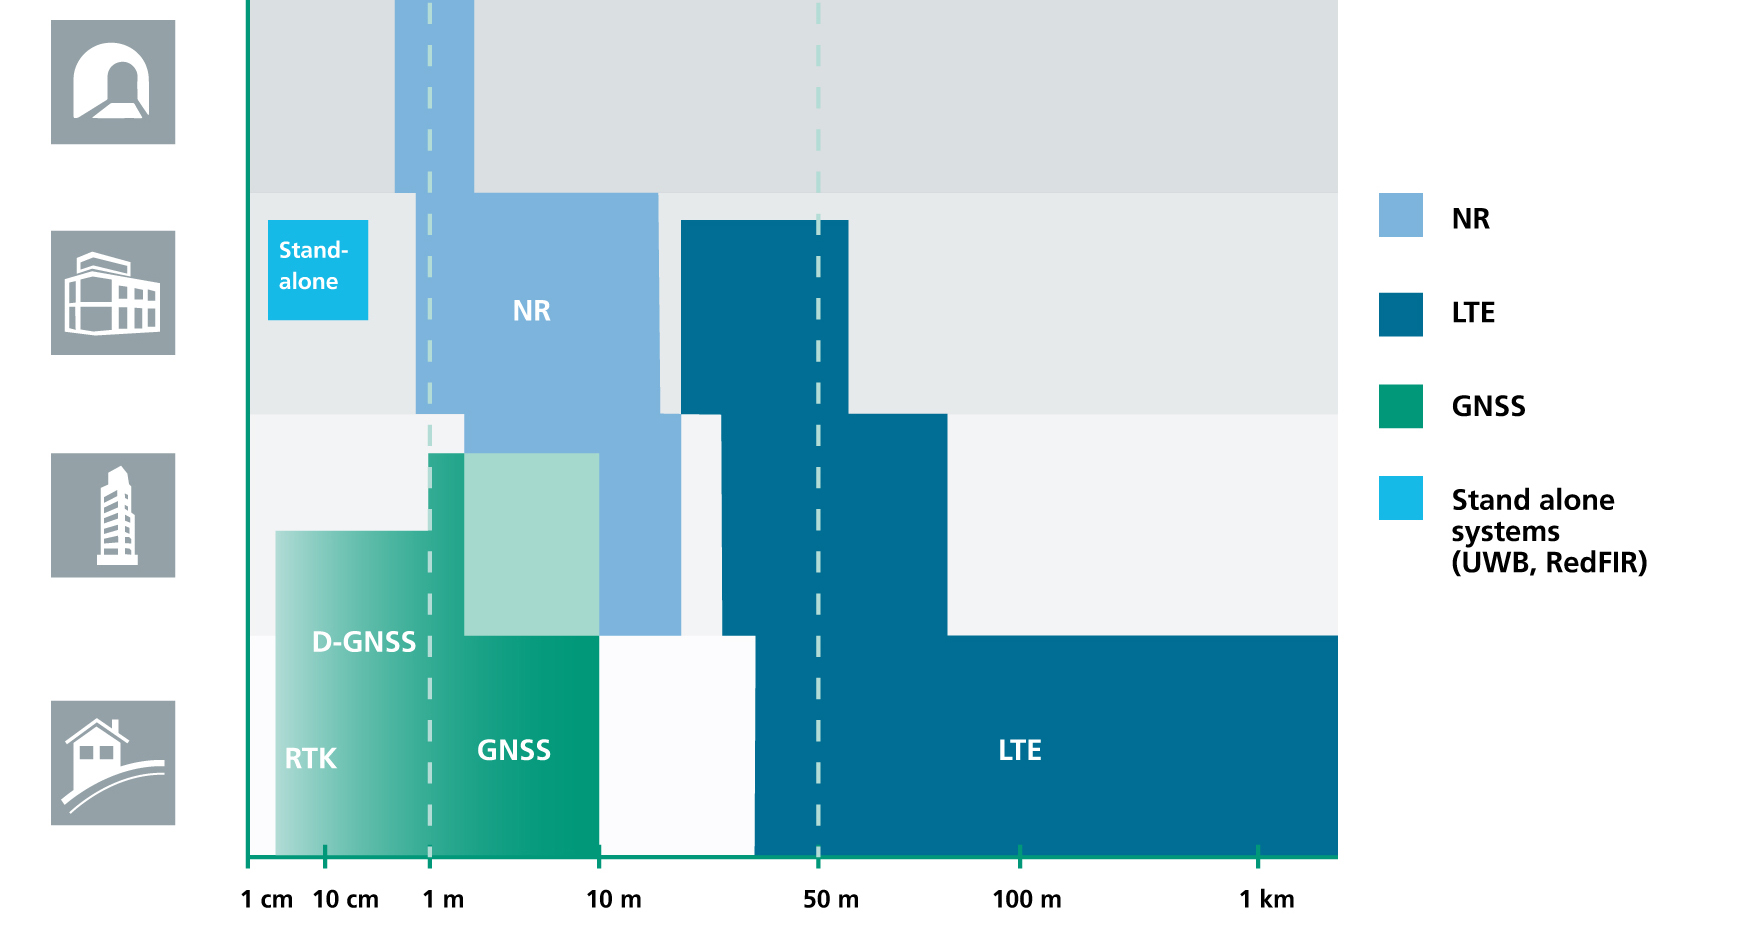 5G, cellular's next step, brings new positioning capabilities